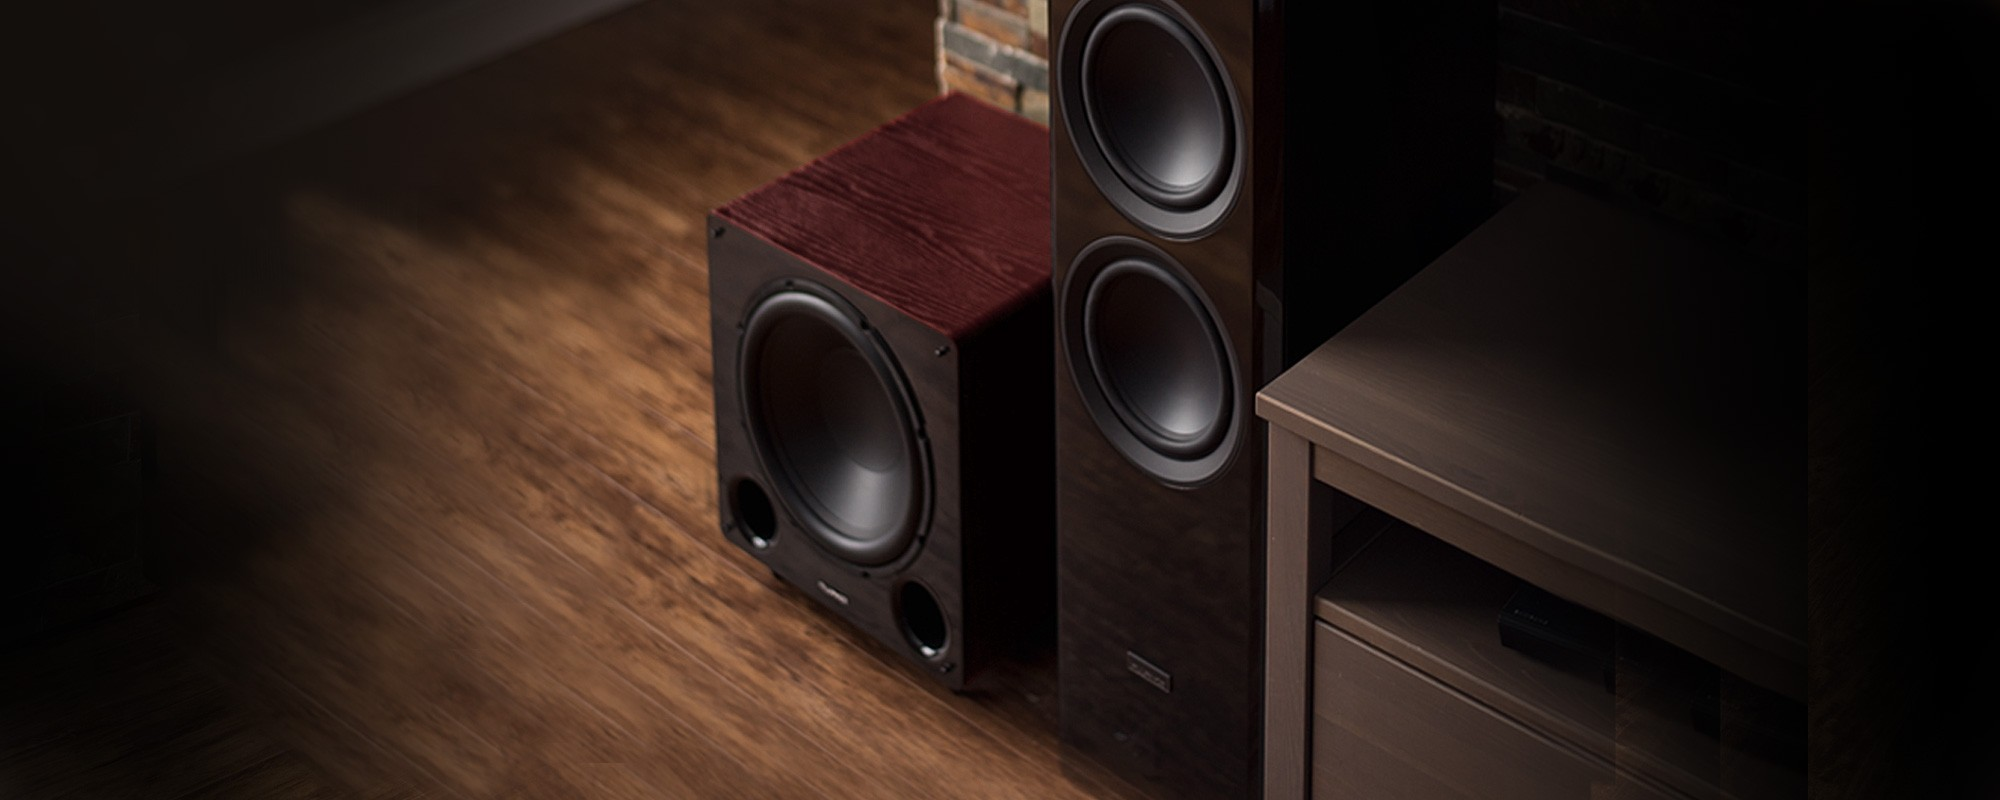 DB12 Mahogany 12-inch Low Frequency Ported Front Firing Powered Subwoofer - Beside TV